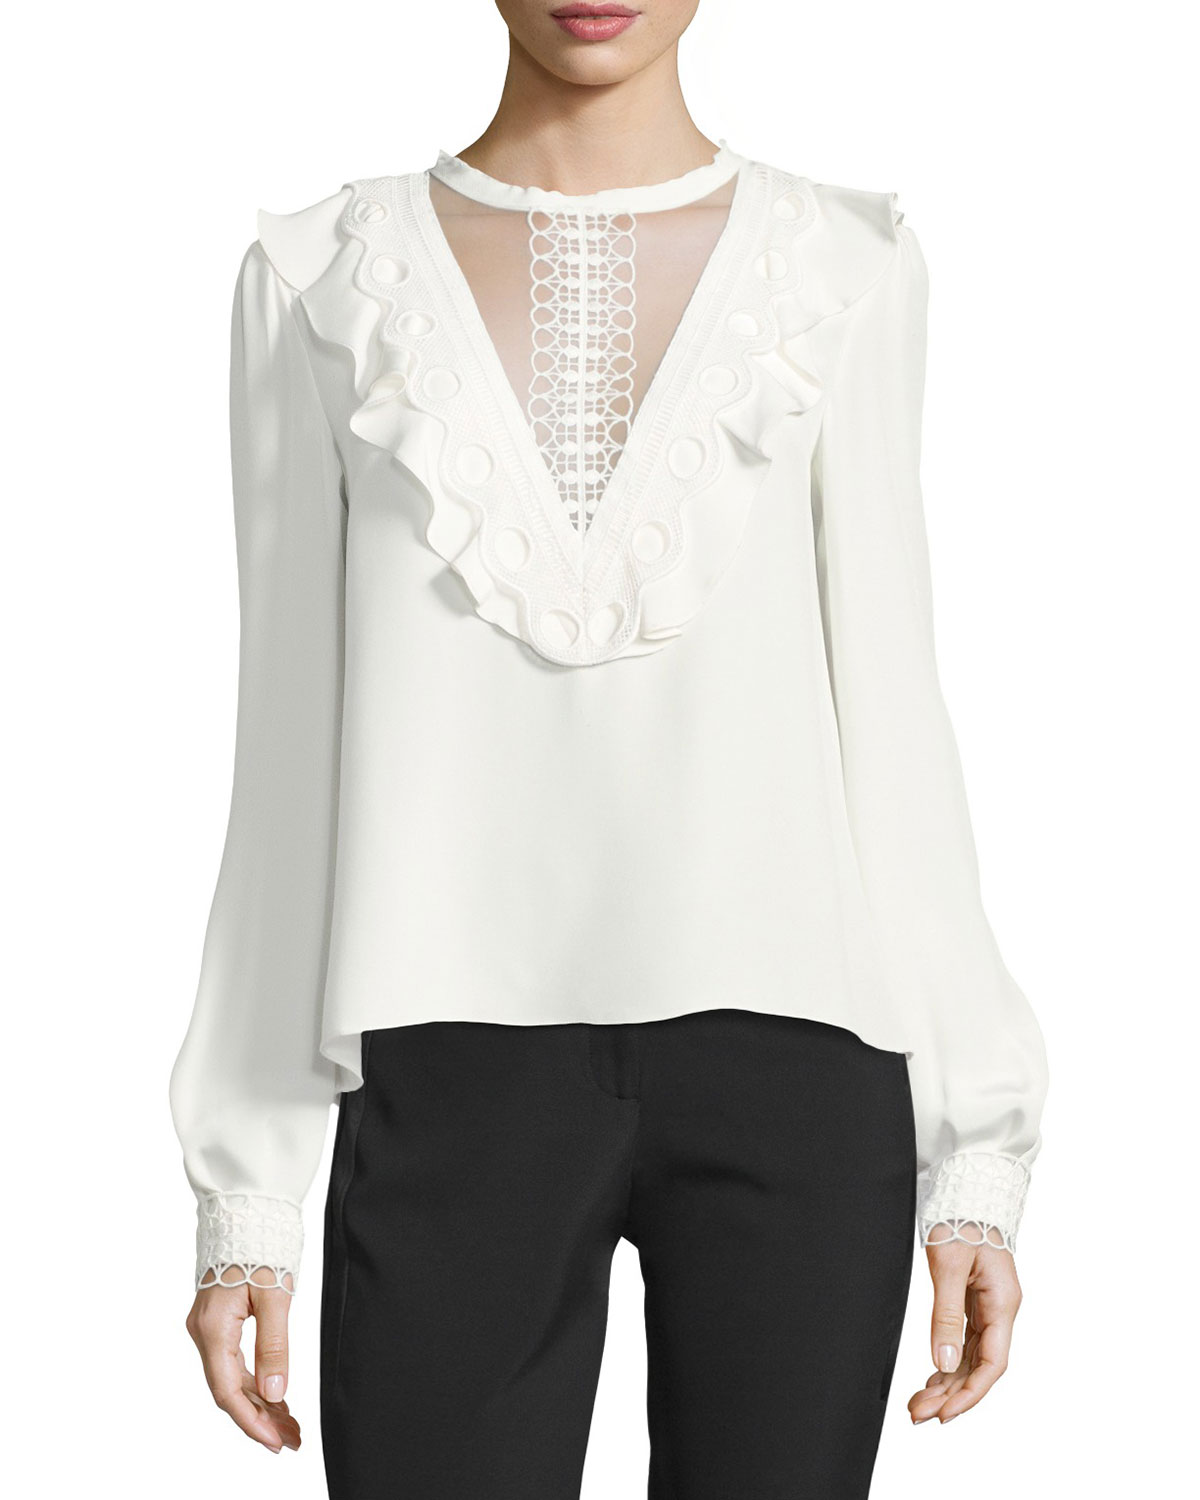 7f657271d94d82 Monique Lhuillier Illusion Ruffle   Lace Silk Blouse and Matching ...